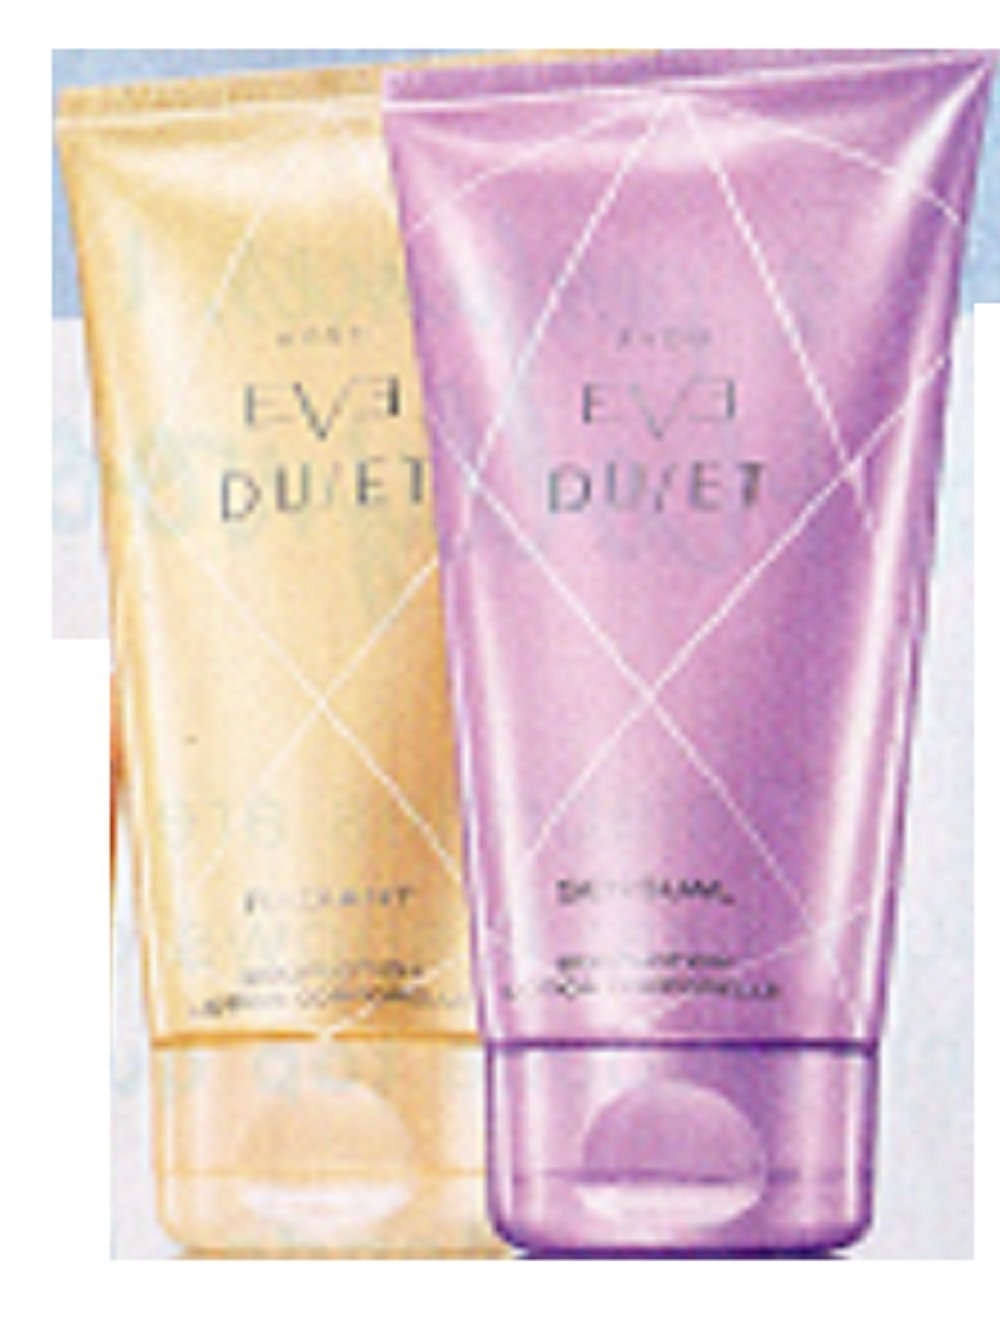 Avon Eve Duet Body Lotions - Radiant and Sensual - 2 x 150lml  Amazon.co.uk   Beauty d68067dc5